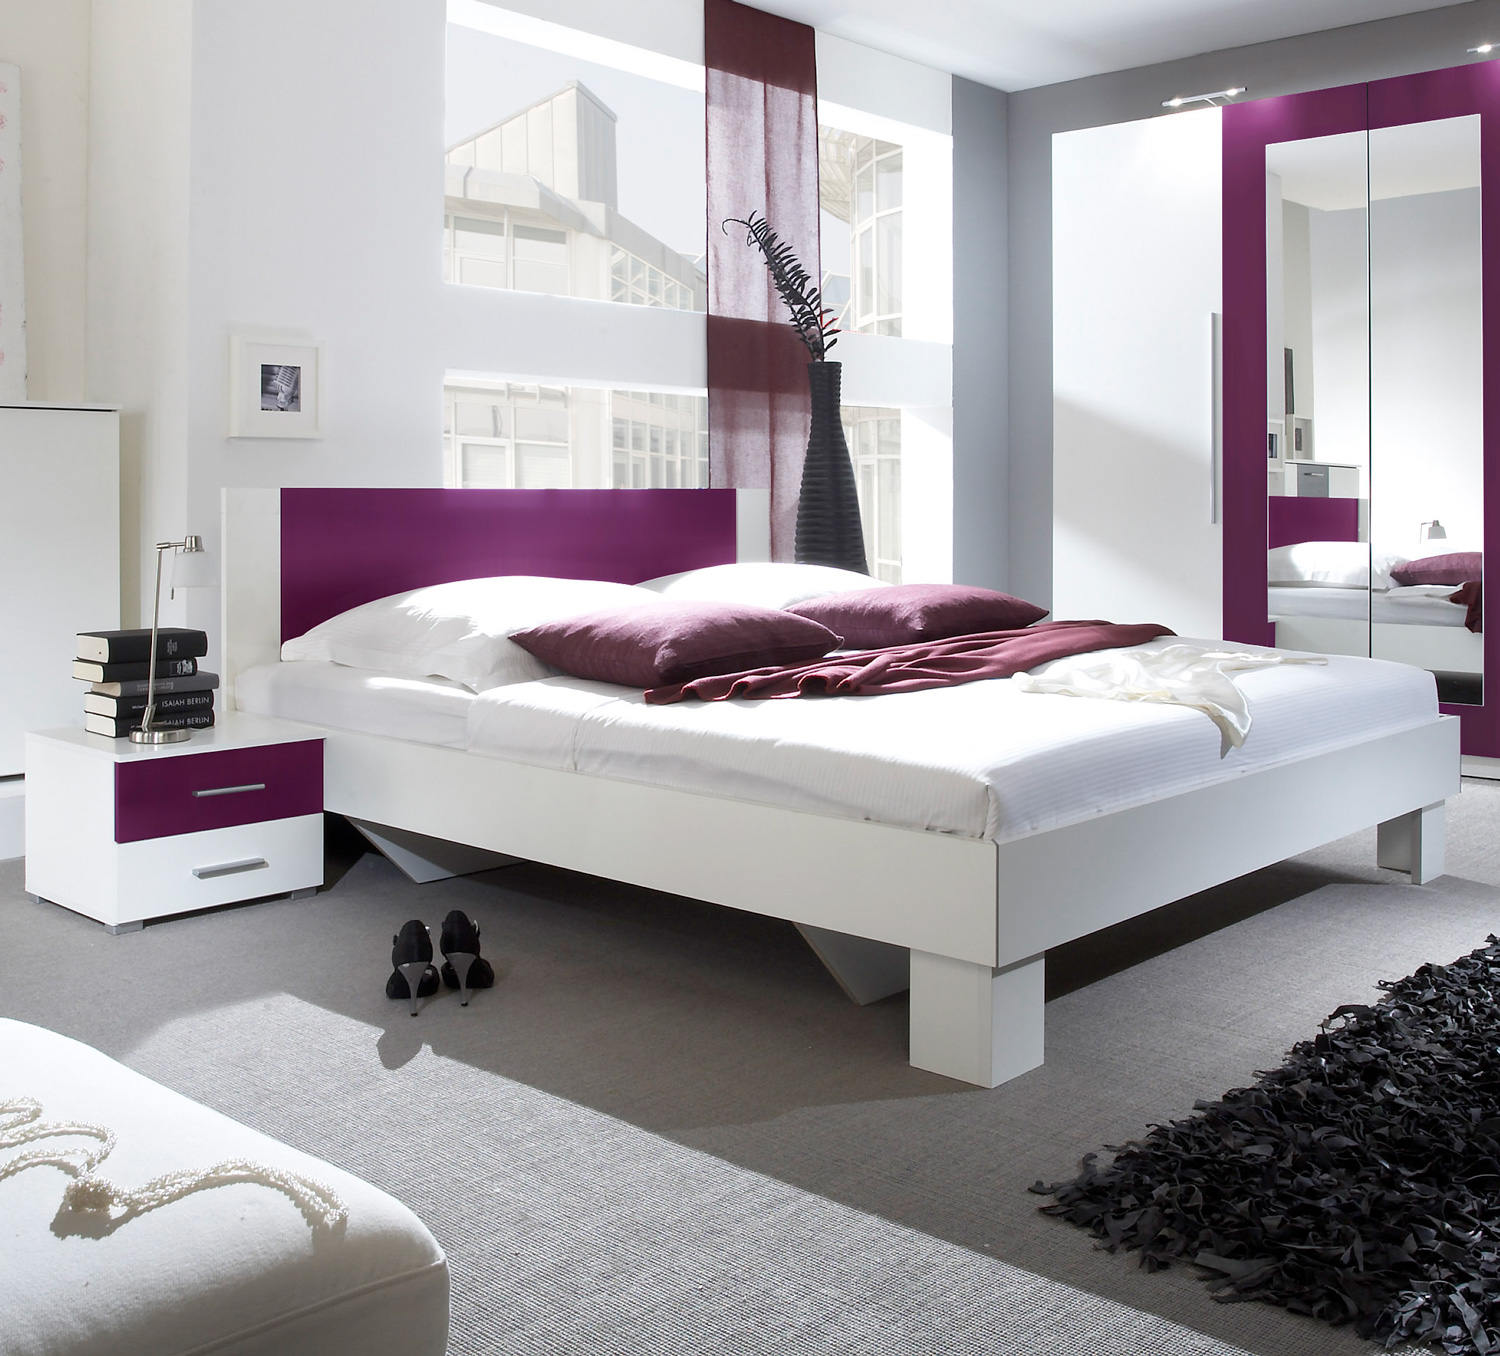 bett mit nachtkonsolen wohn design. Black Bedroom Furniture Sets. Home Design Ideas